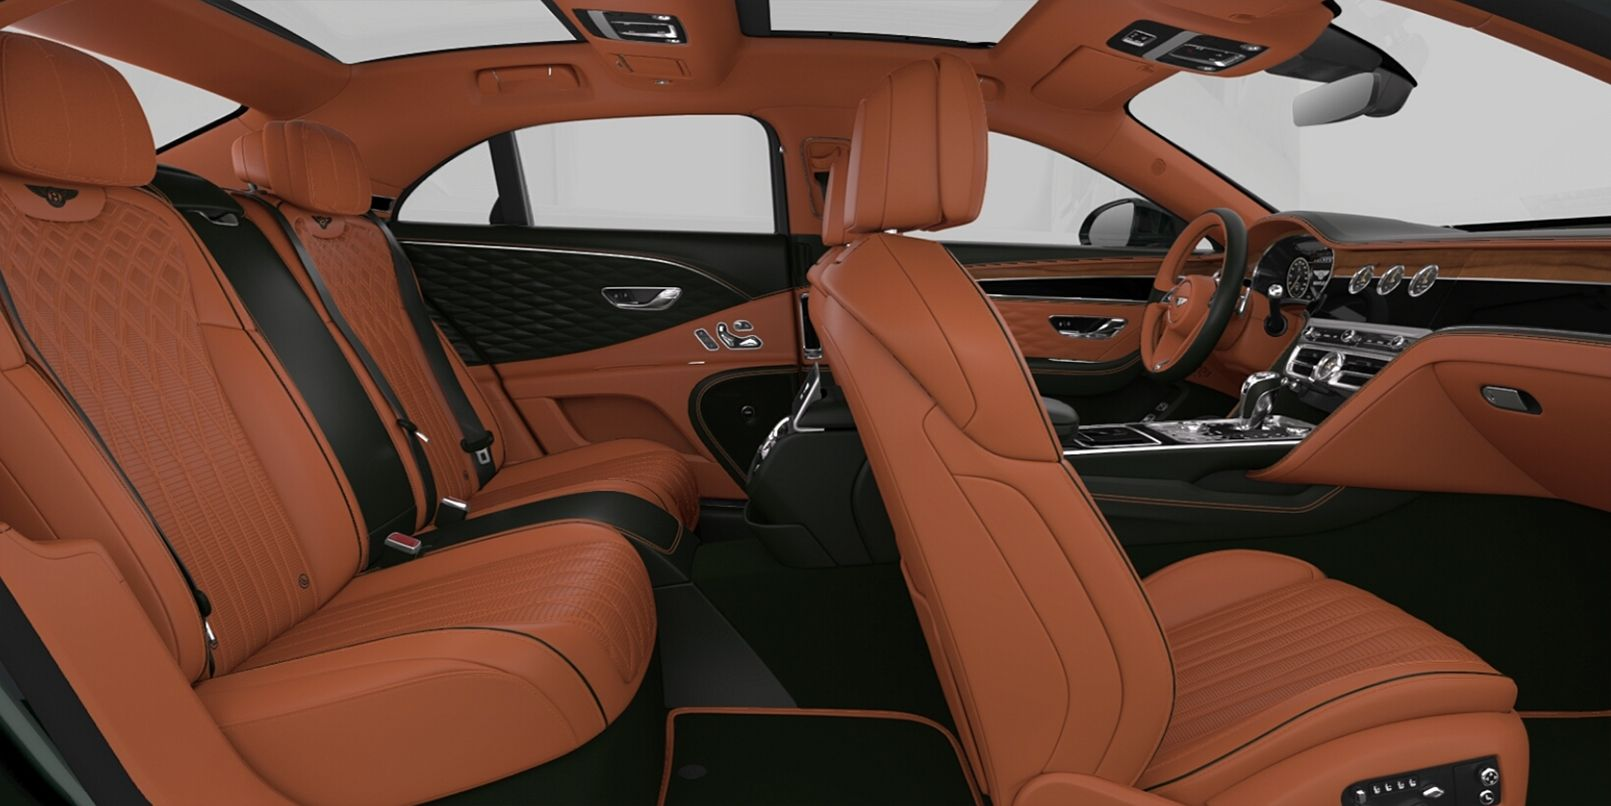 2020 Bentley Flying Spur Configured Four Ways Build Your Own